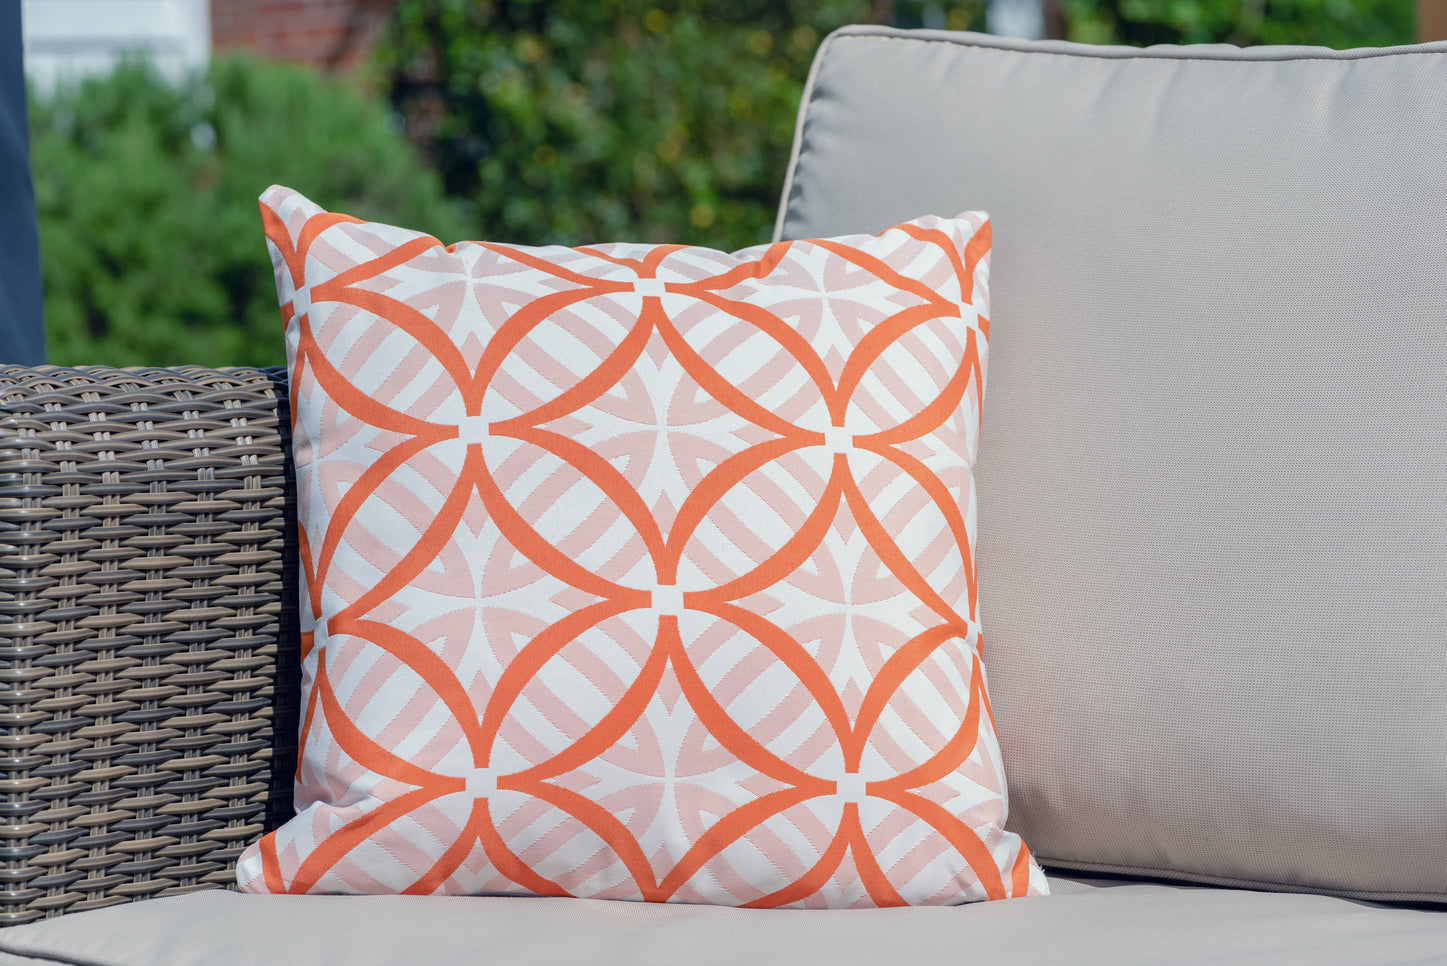 Armadillo Sun waterproof luxury cushion in orange and white coolum pattern